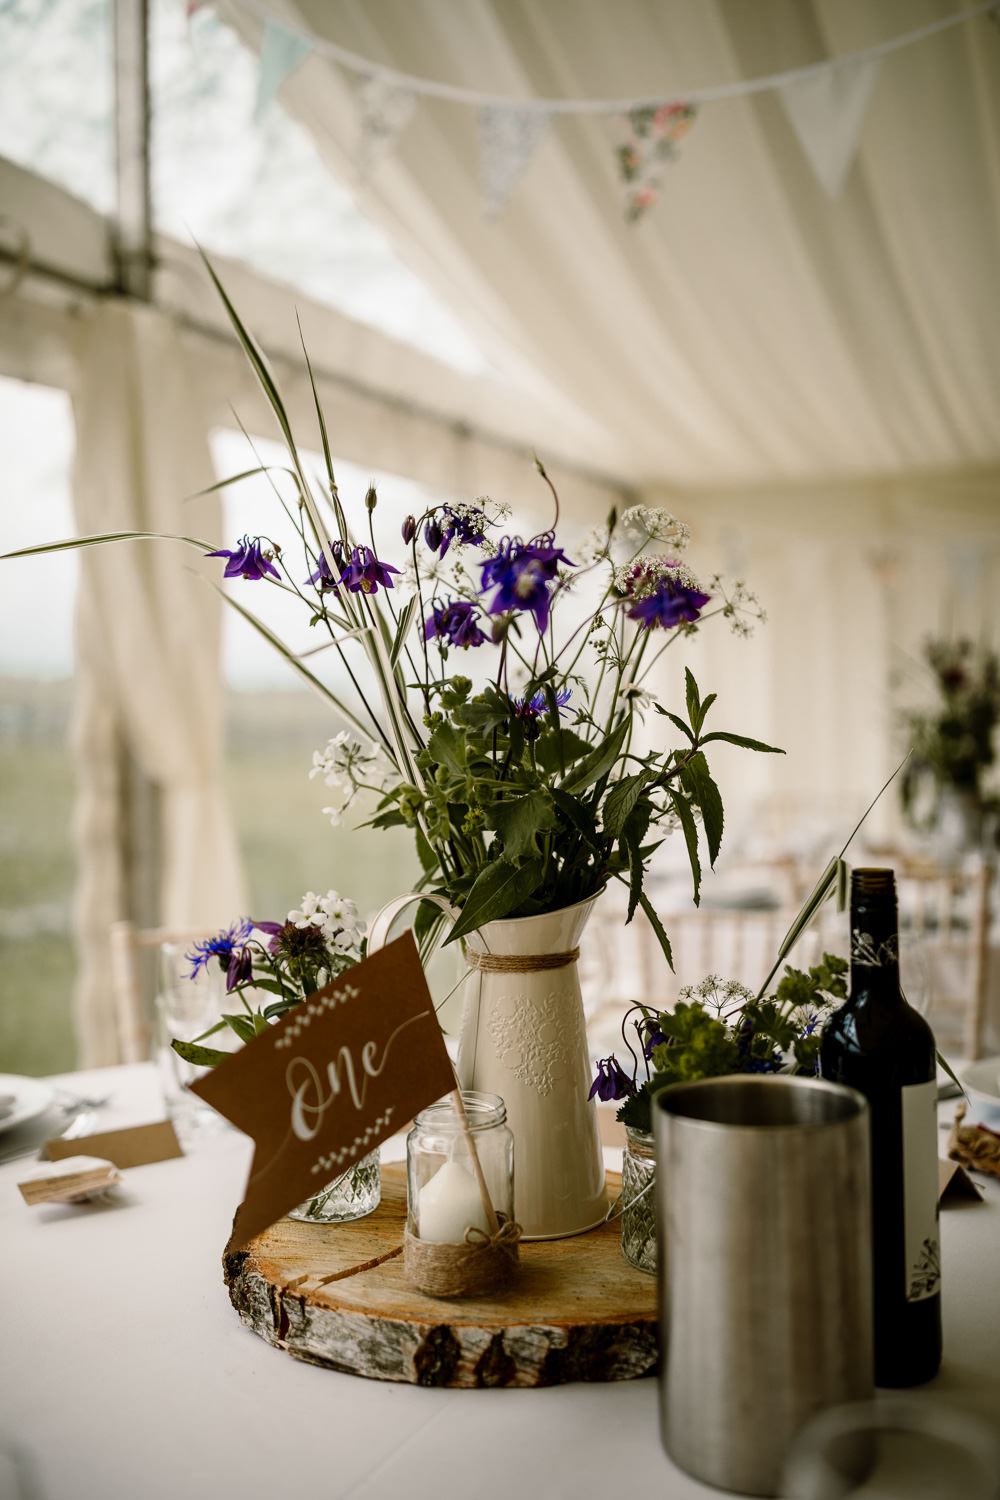 Centrepiece Table Decor Decorations Log Slice Jug Flowers Purple Pennant Flag Table Name Candle Yorkshire Barn Wedding Hayley Baxter Photography